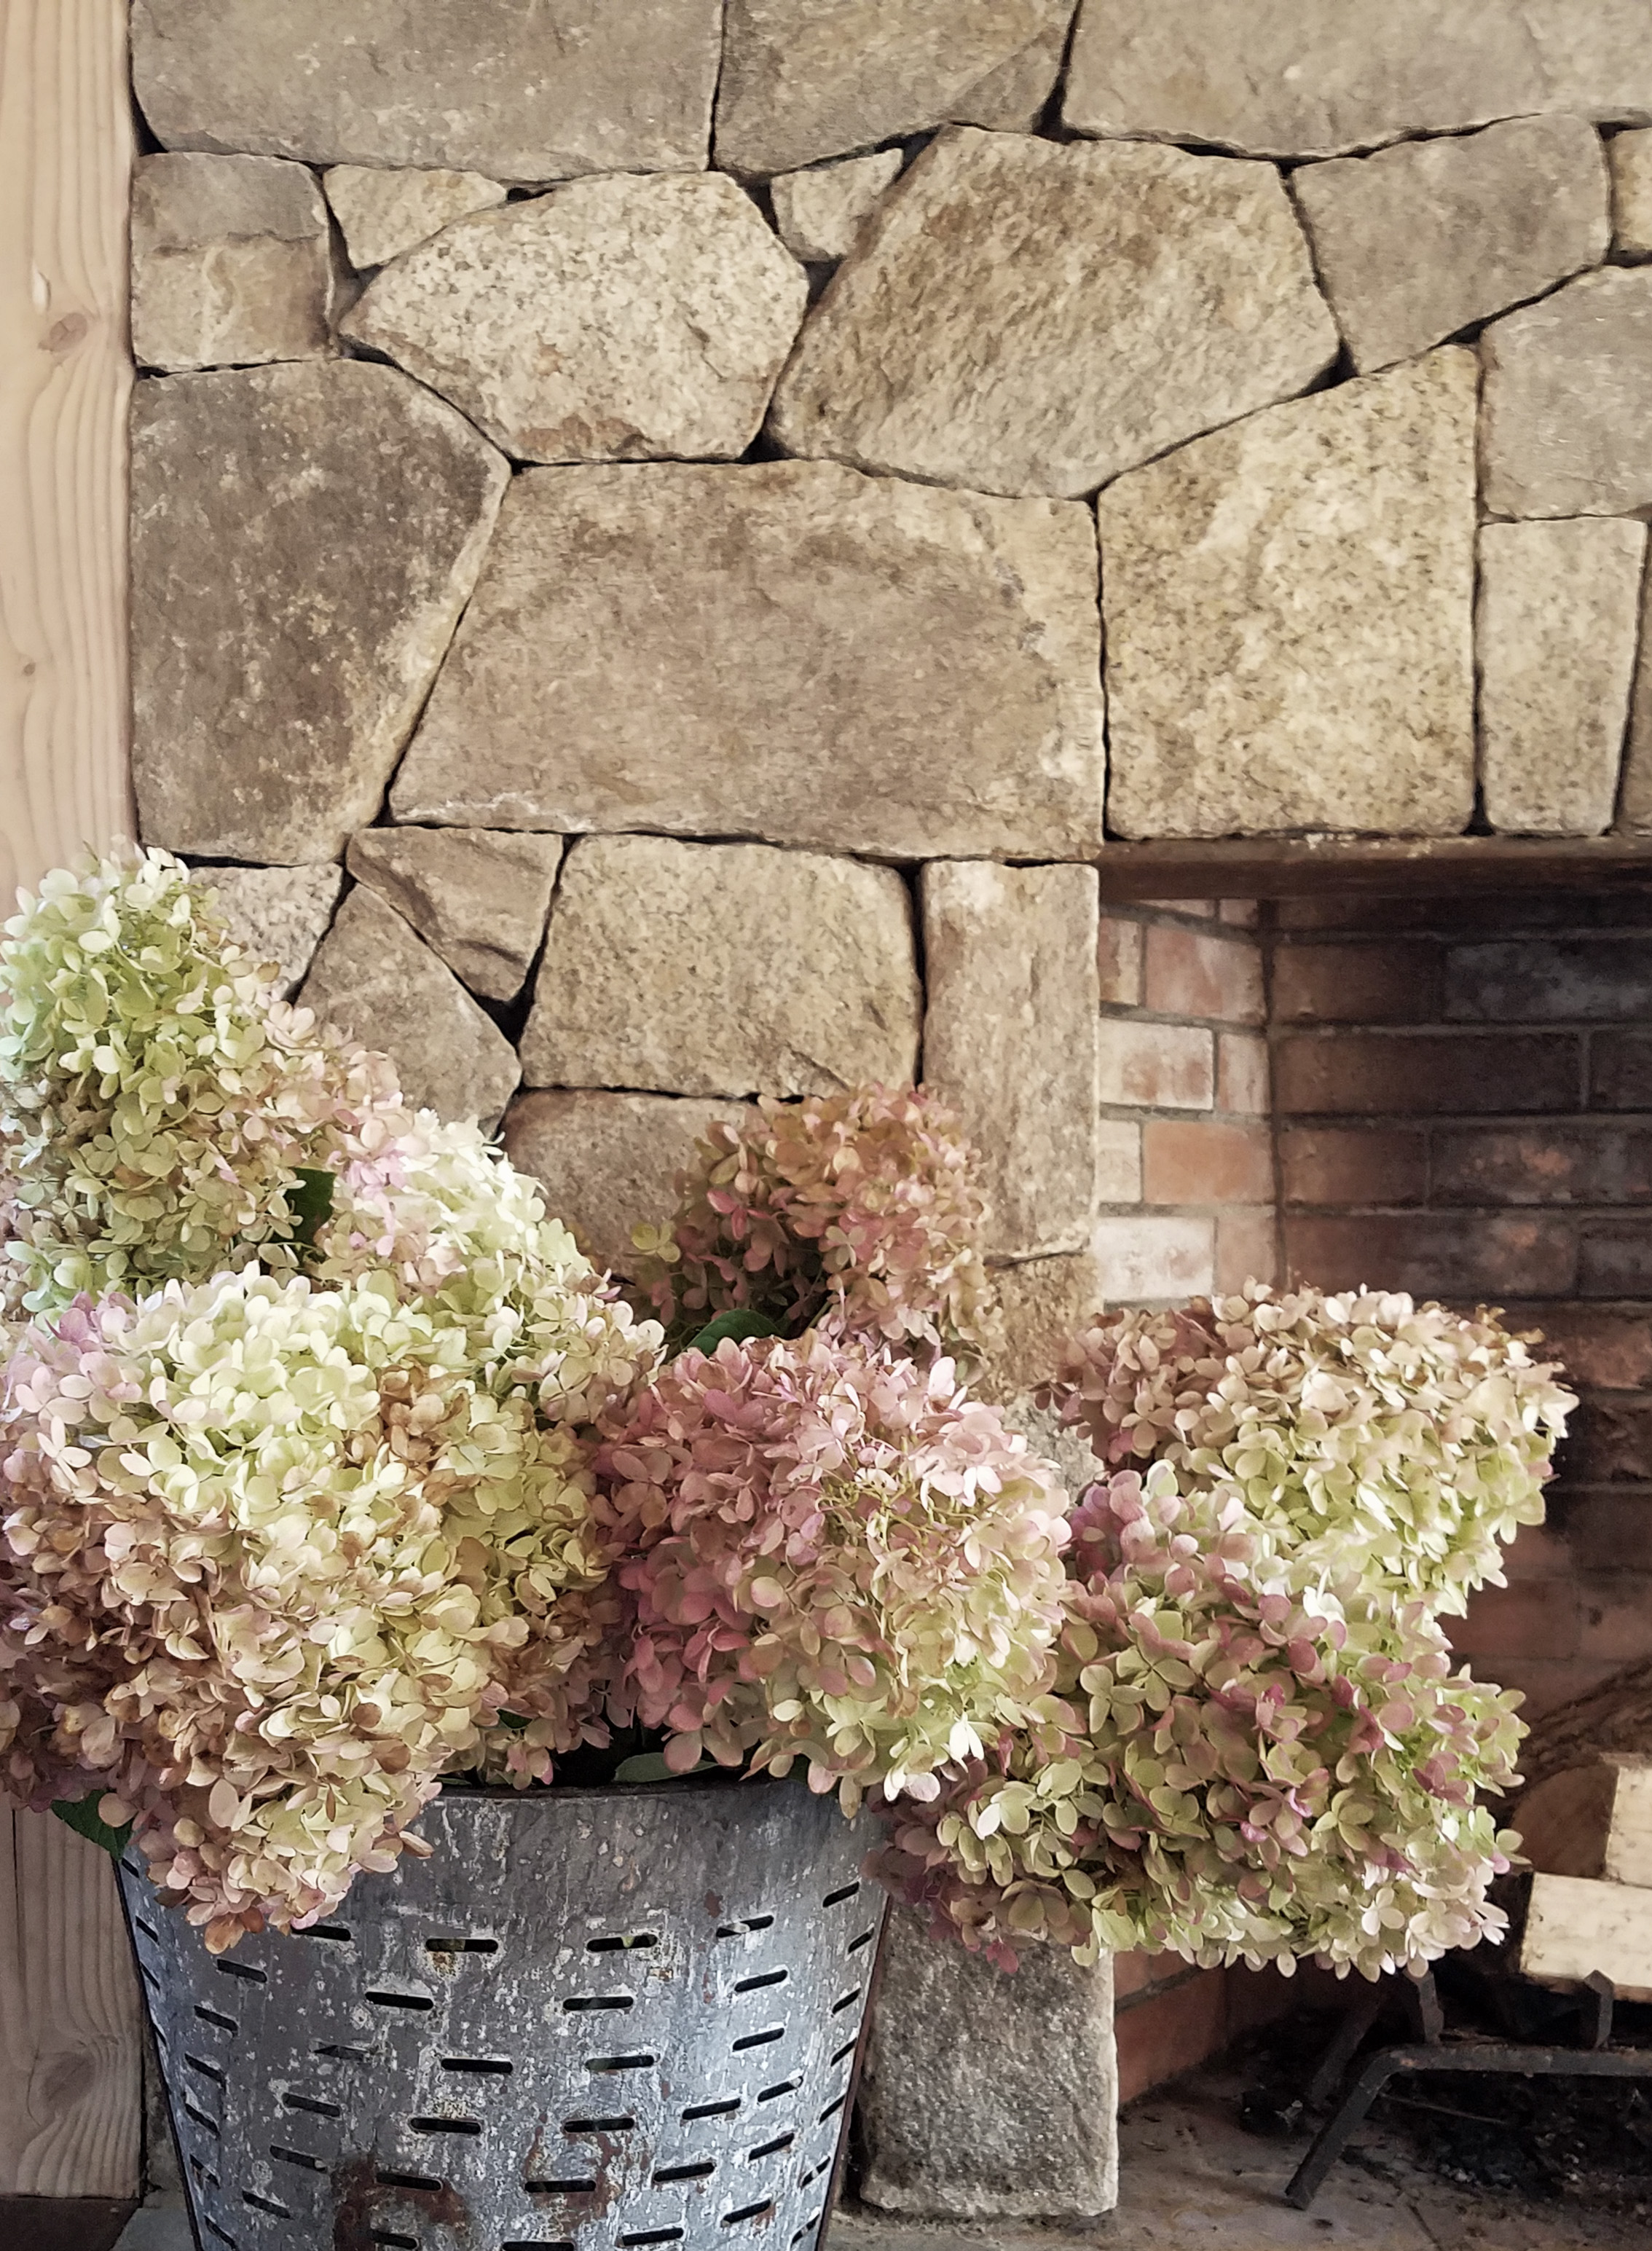 Fireplace Stone & Flower Close Up.jpg